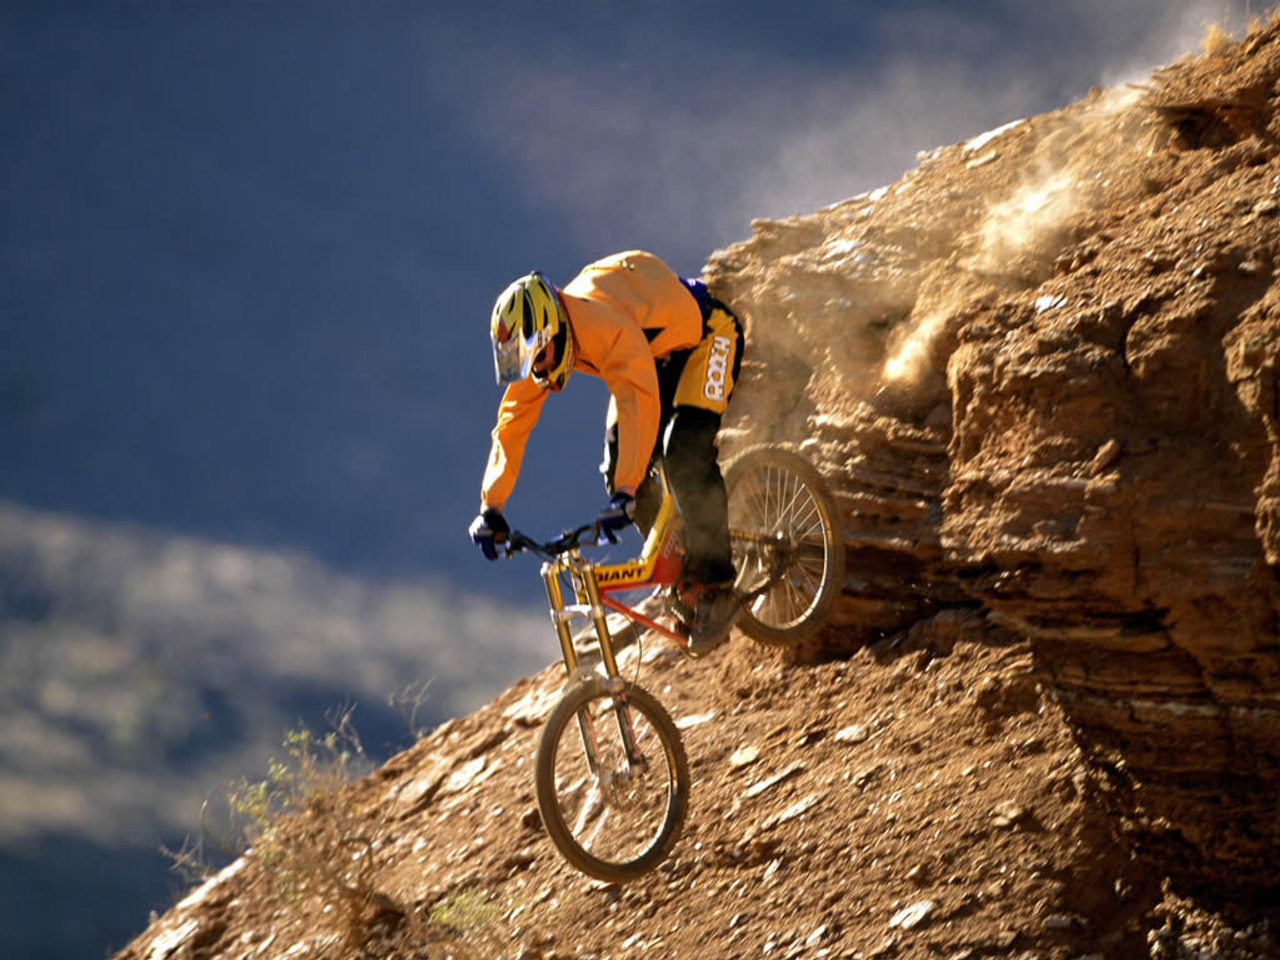 1000+ images about Mountain bike freestyle on Pinterest ...